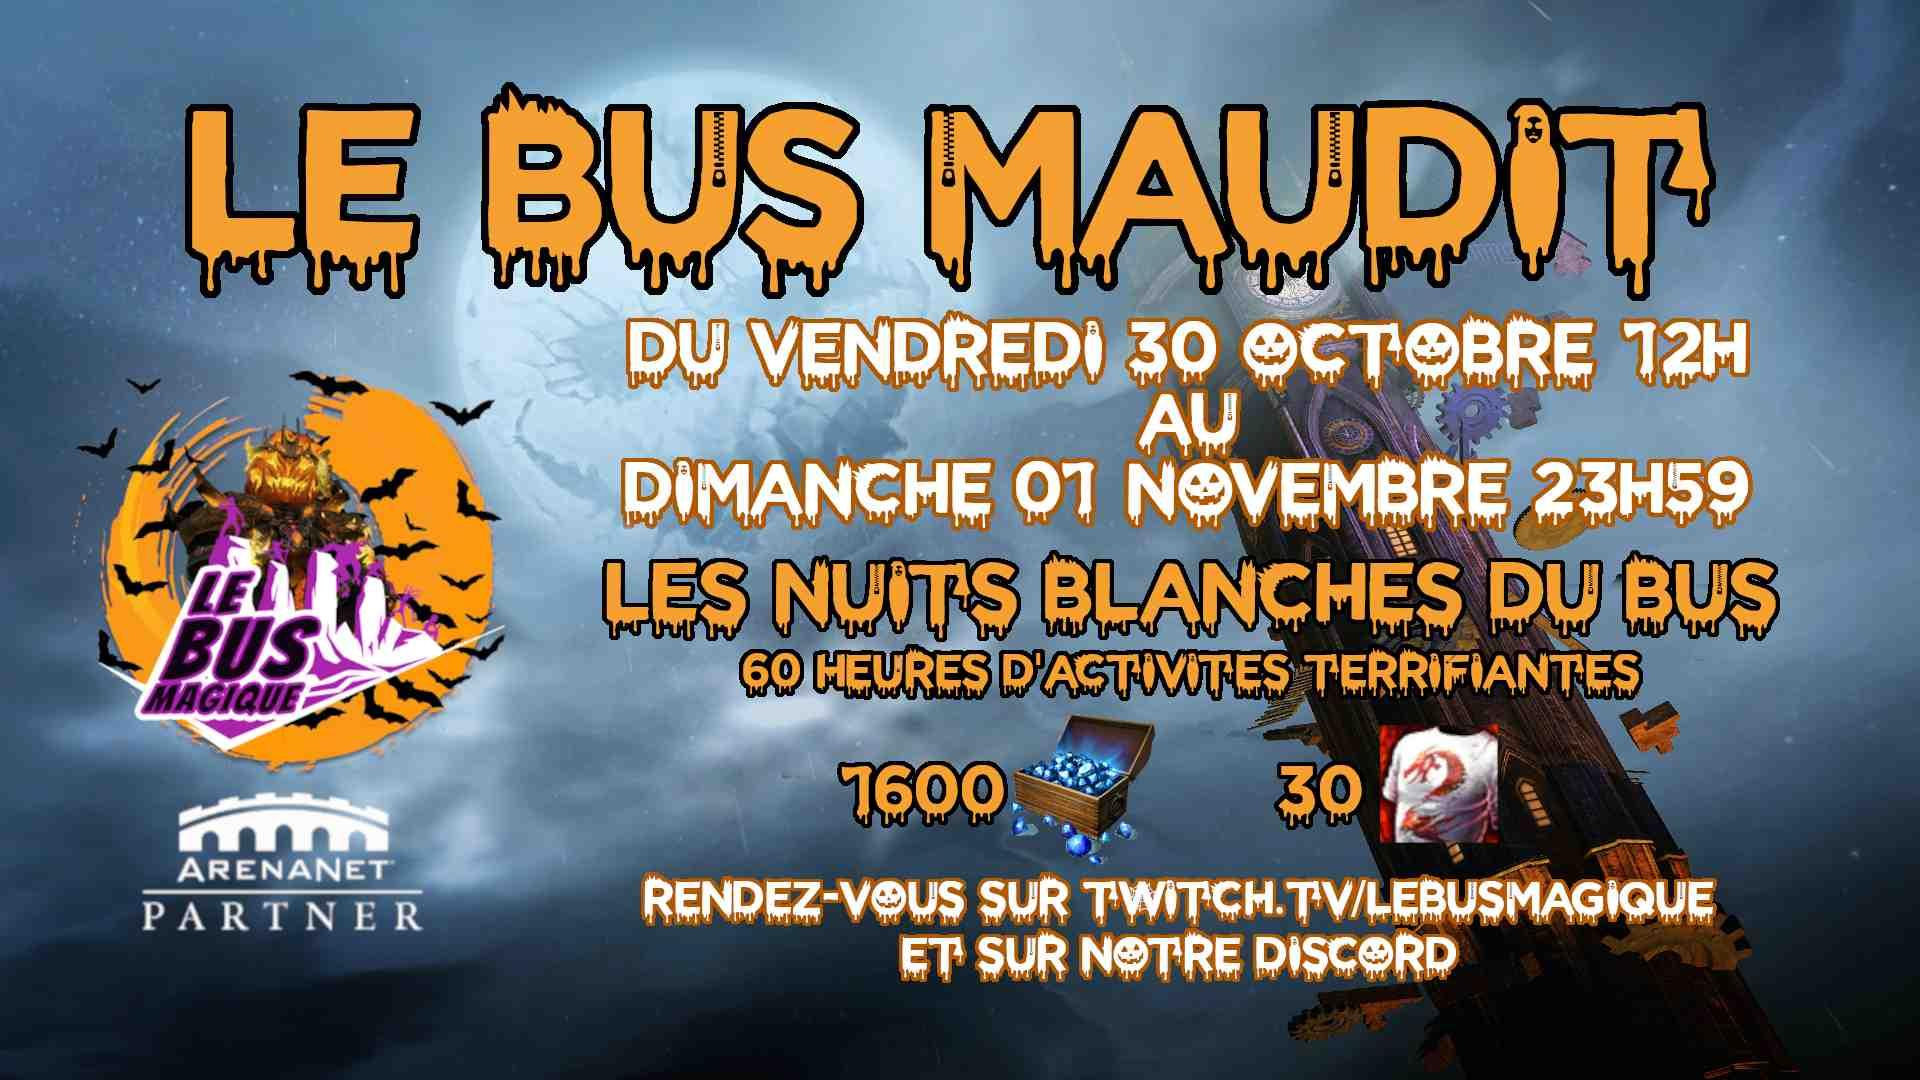 Bus maudit 2020